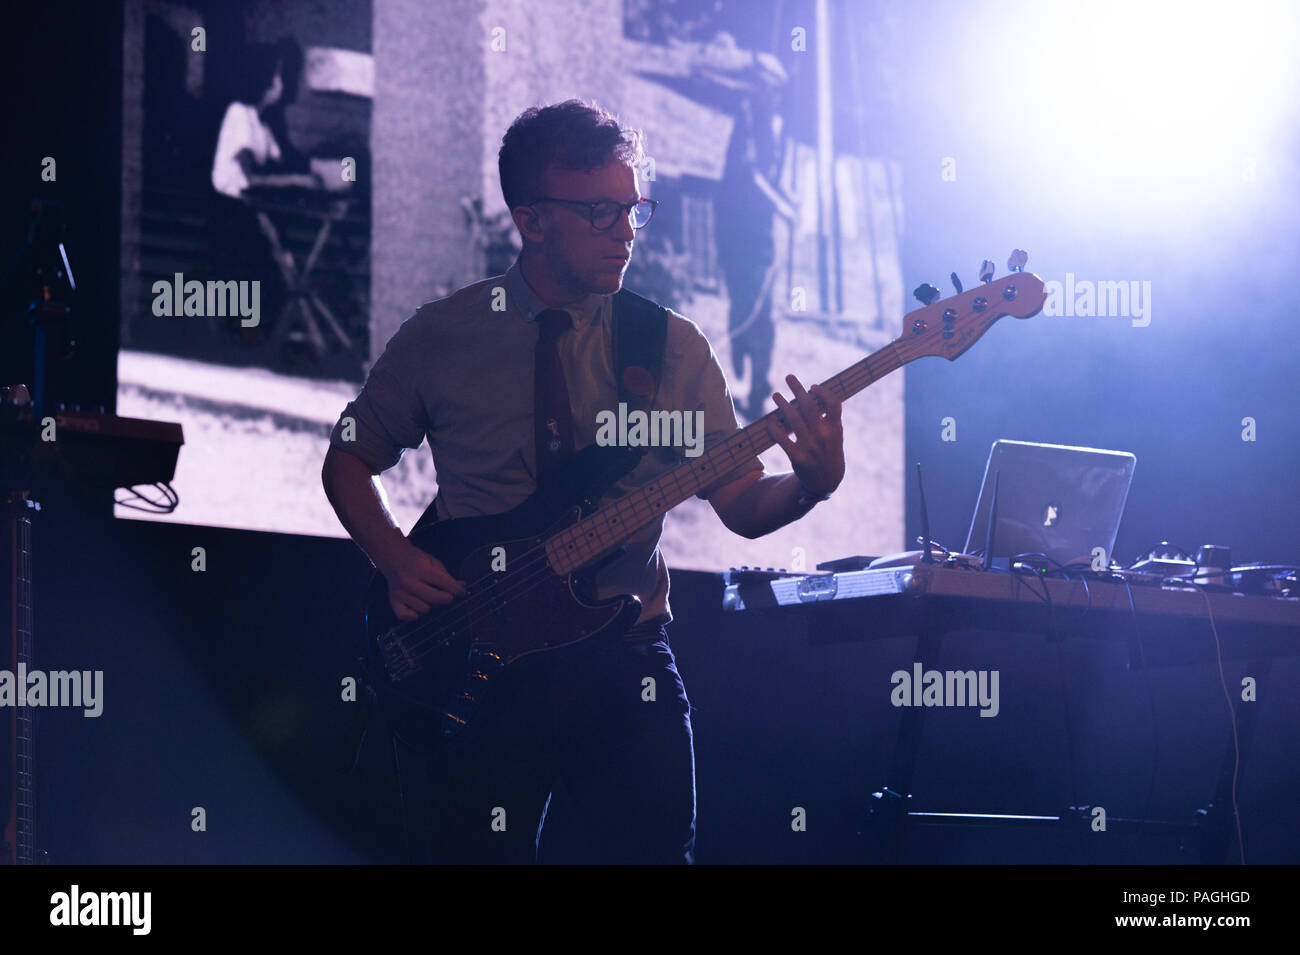 Larmer Tree Festival , UK, date 22th, July, 2018, Public Service Broadcasting on the main Stage at Larmer Tree festival, Credit: Guy Peterson. - Stock Image